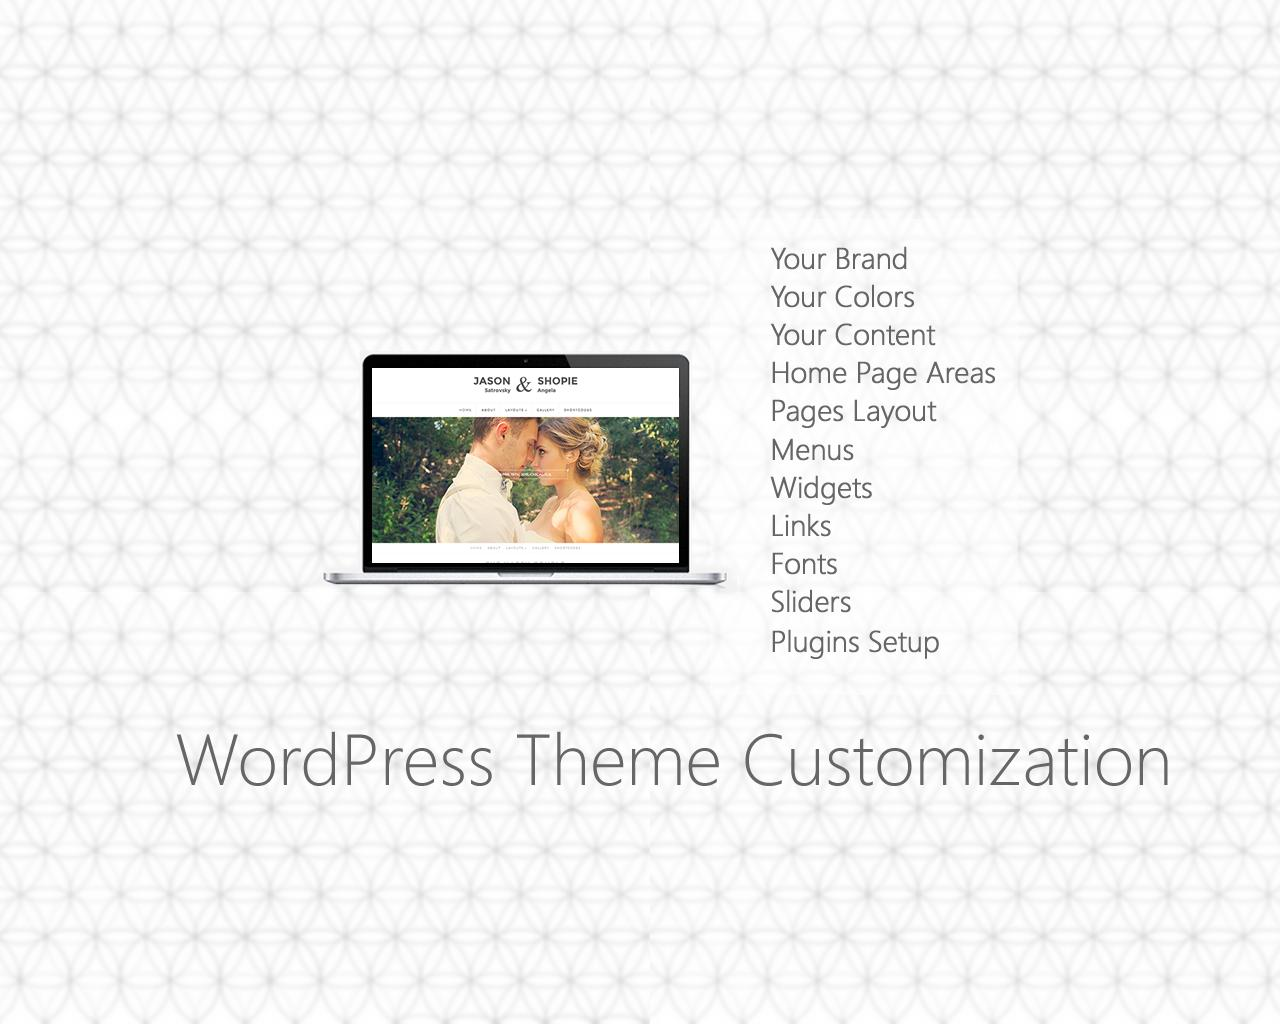 Complete WordPress Theme Customization by sympleweb - 63230